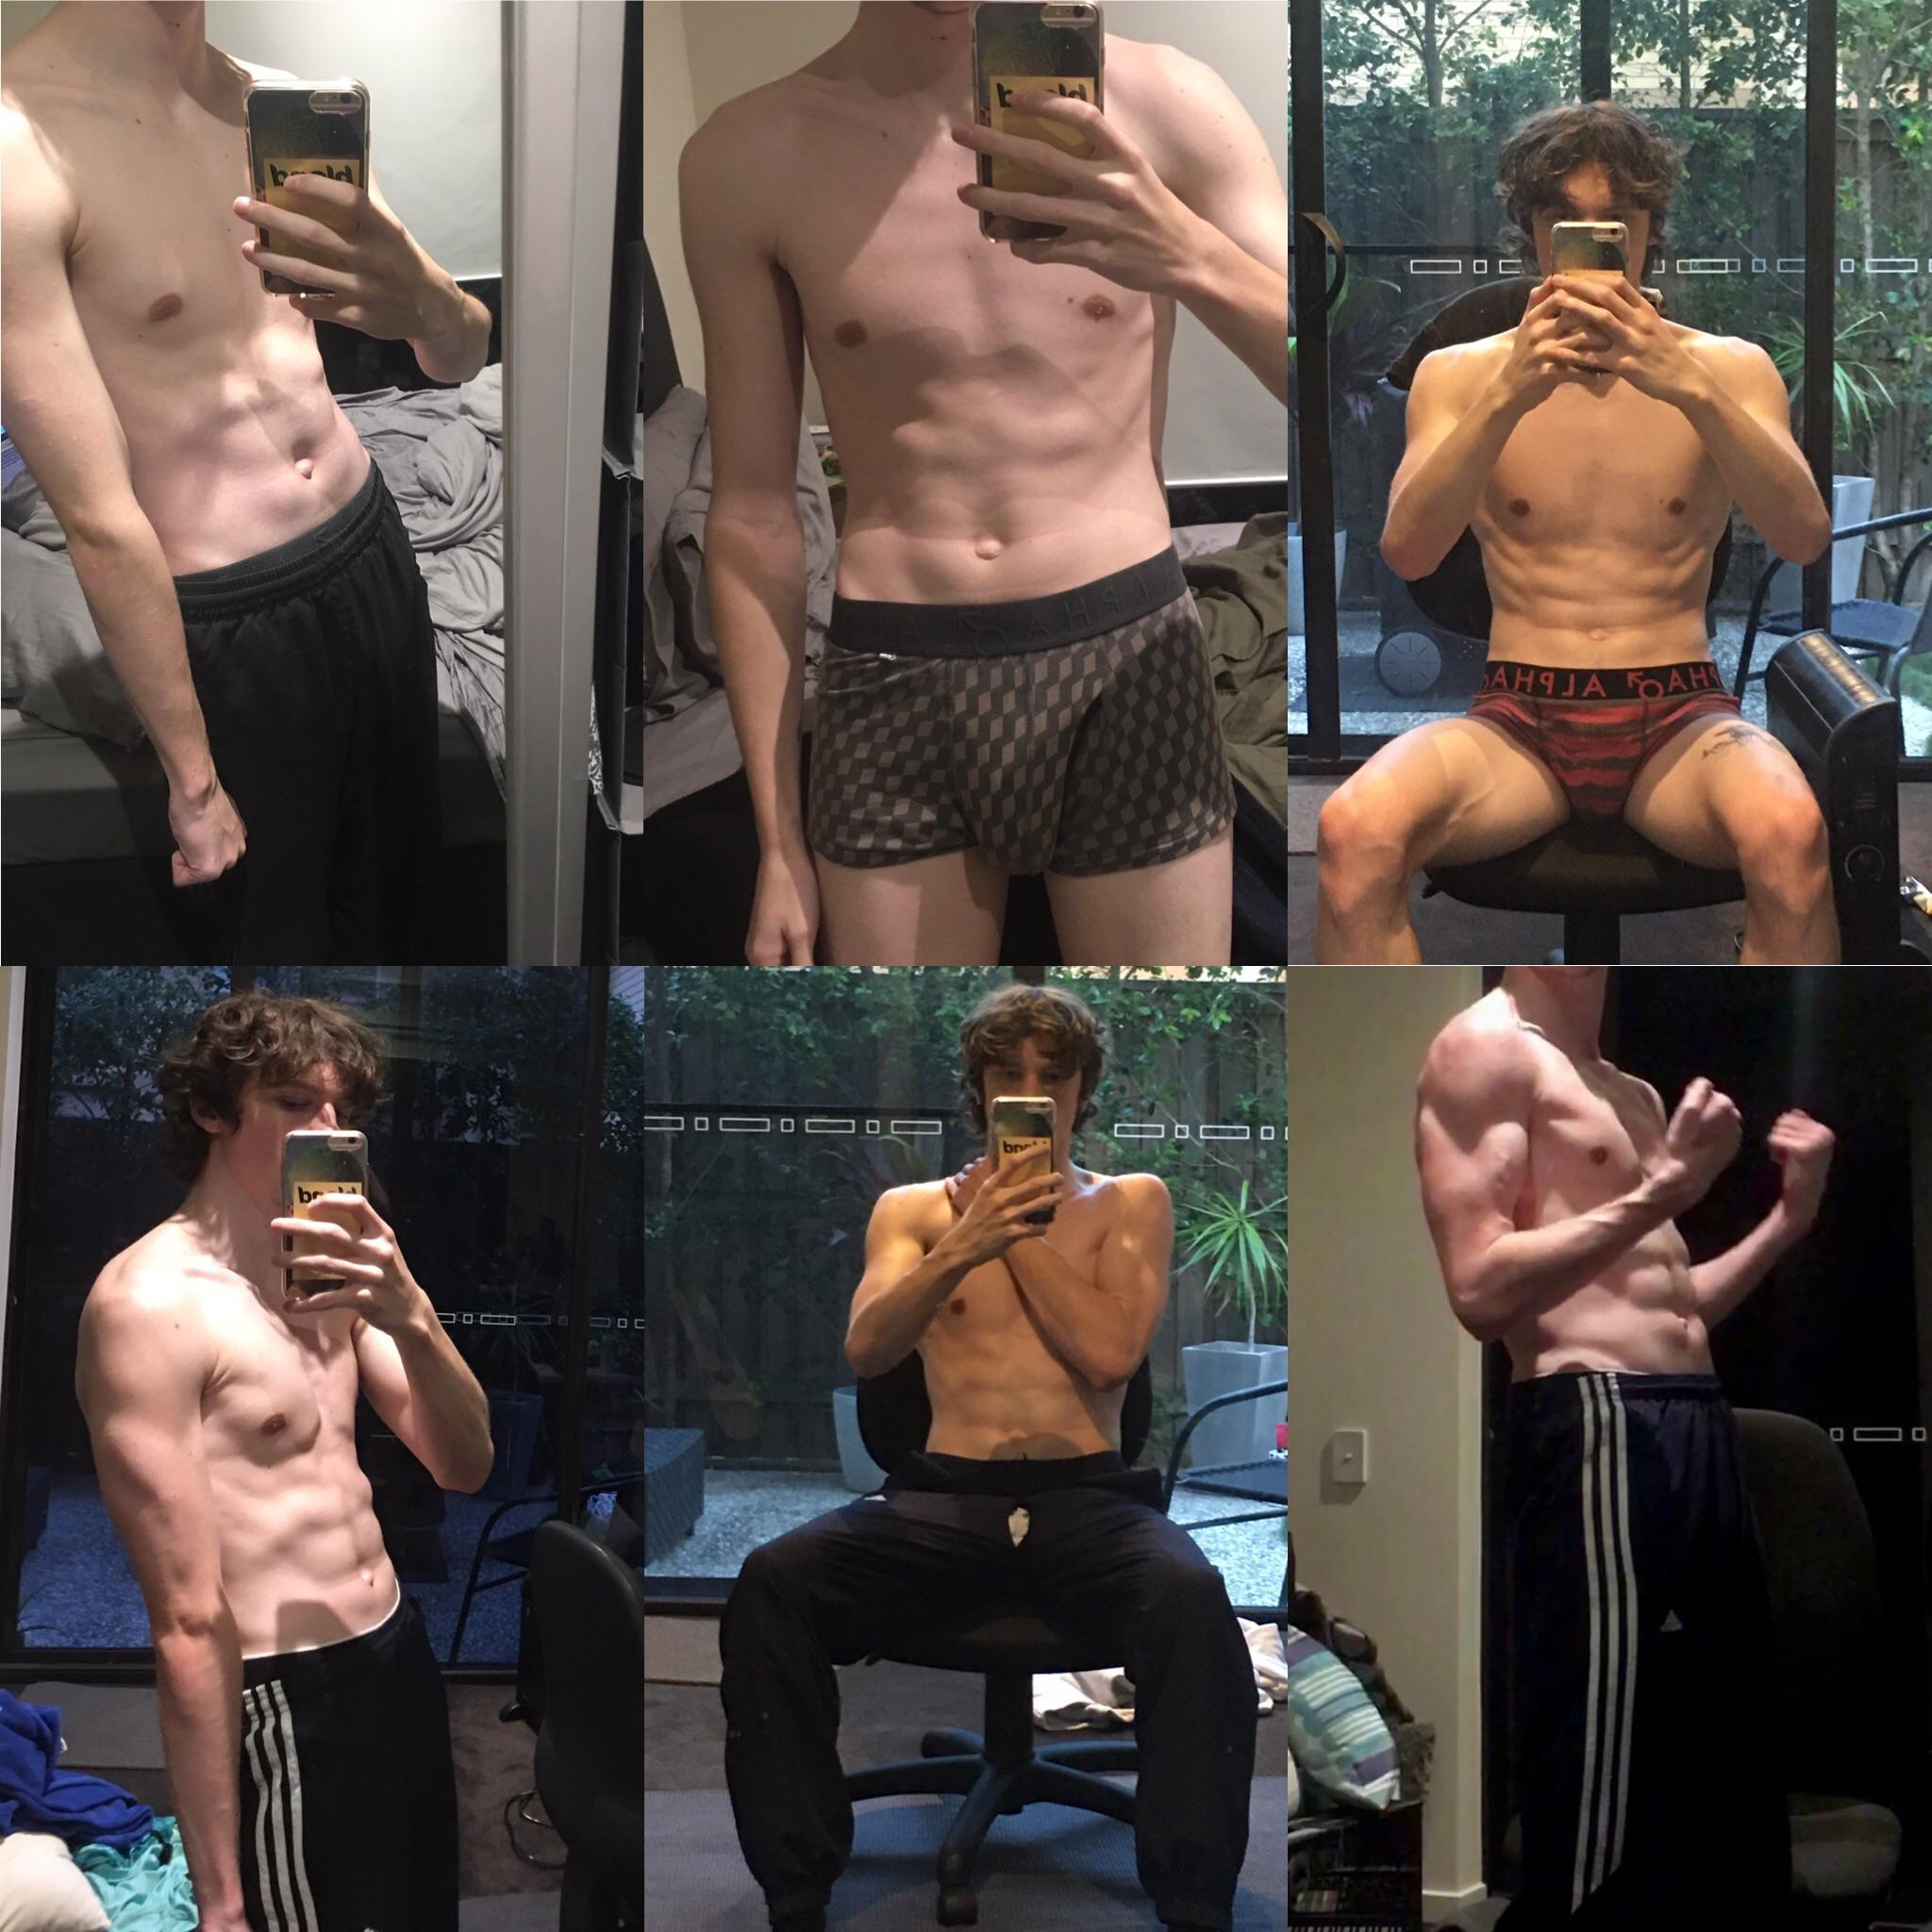 5'10 Male Before and After 25 lbs Weight Gain 125 lbs to 150 lbs